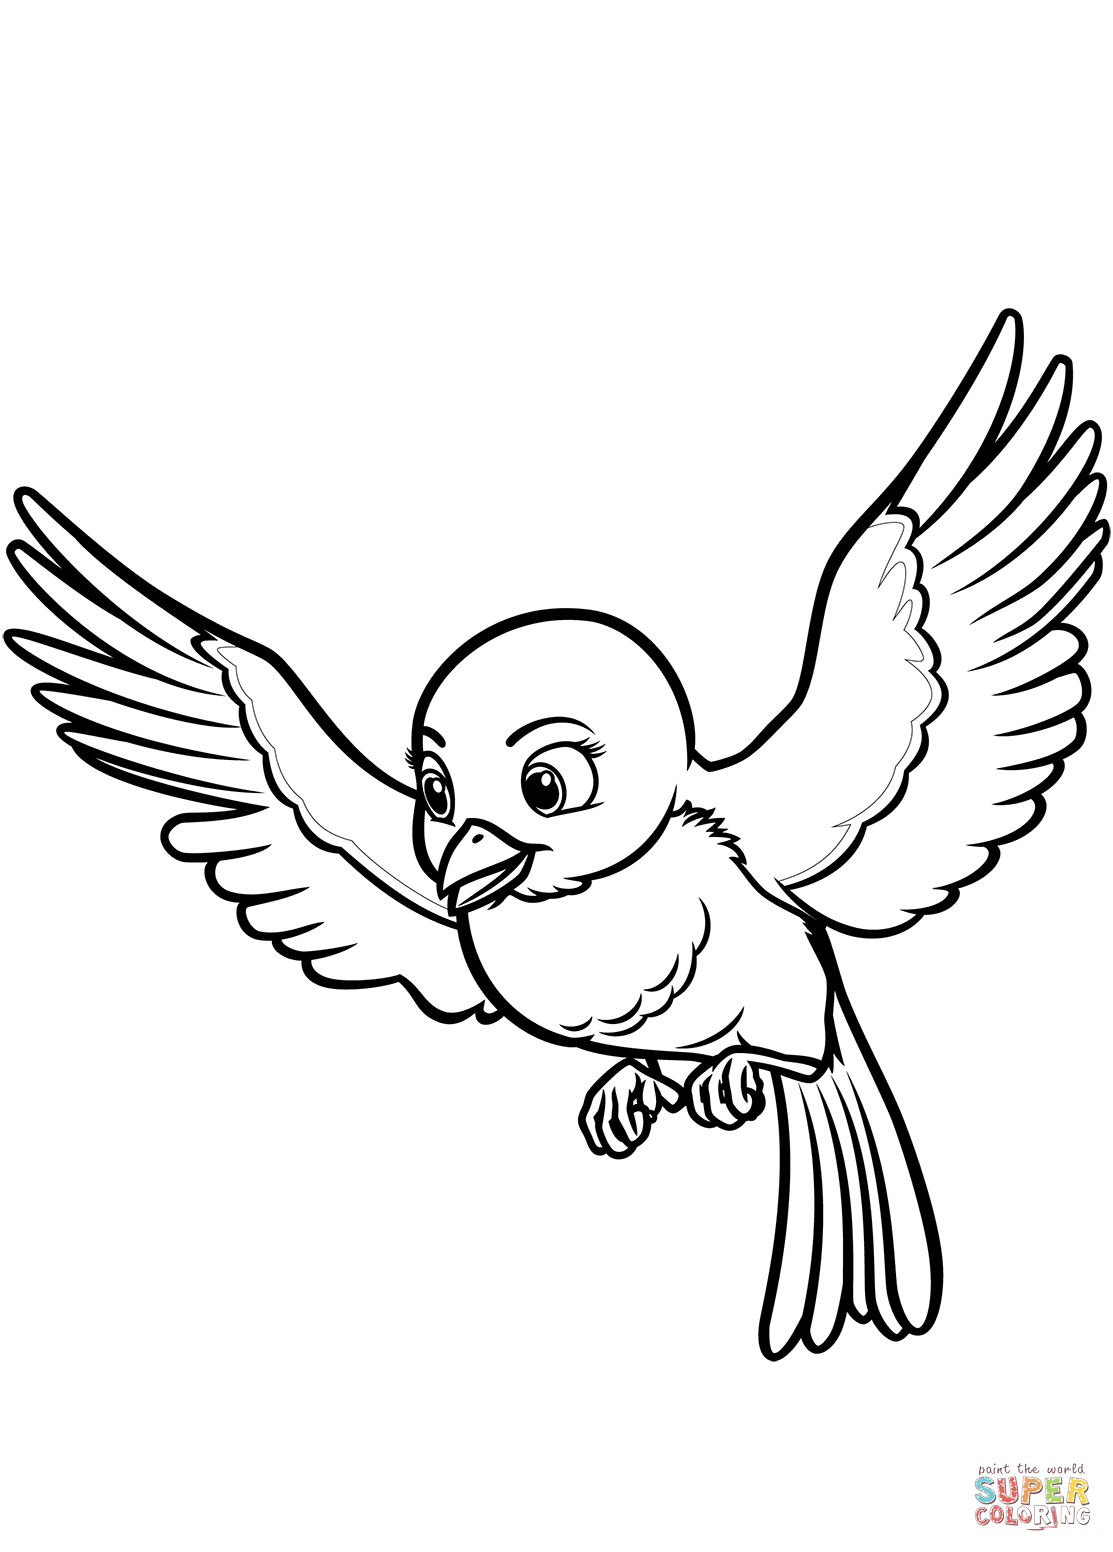 Mia The Bluebird From Sofia The First Coloring Page Free Bird Coloring Pages Disney Coloring Pages Printables Animal Coloring Pages